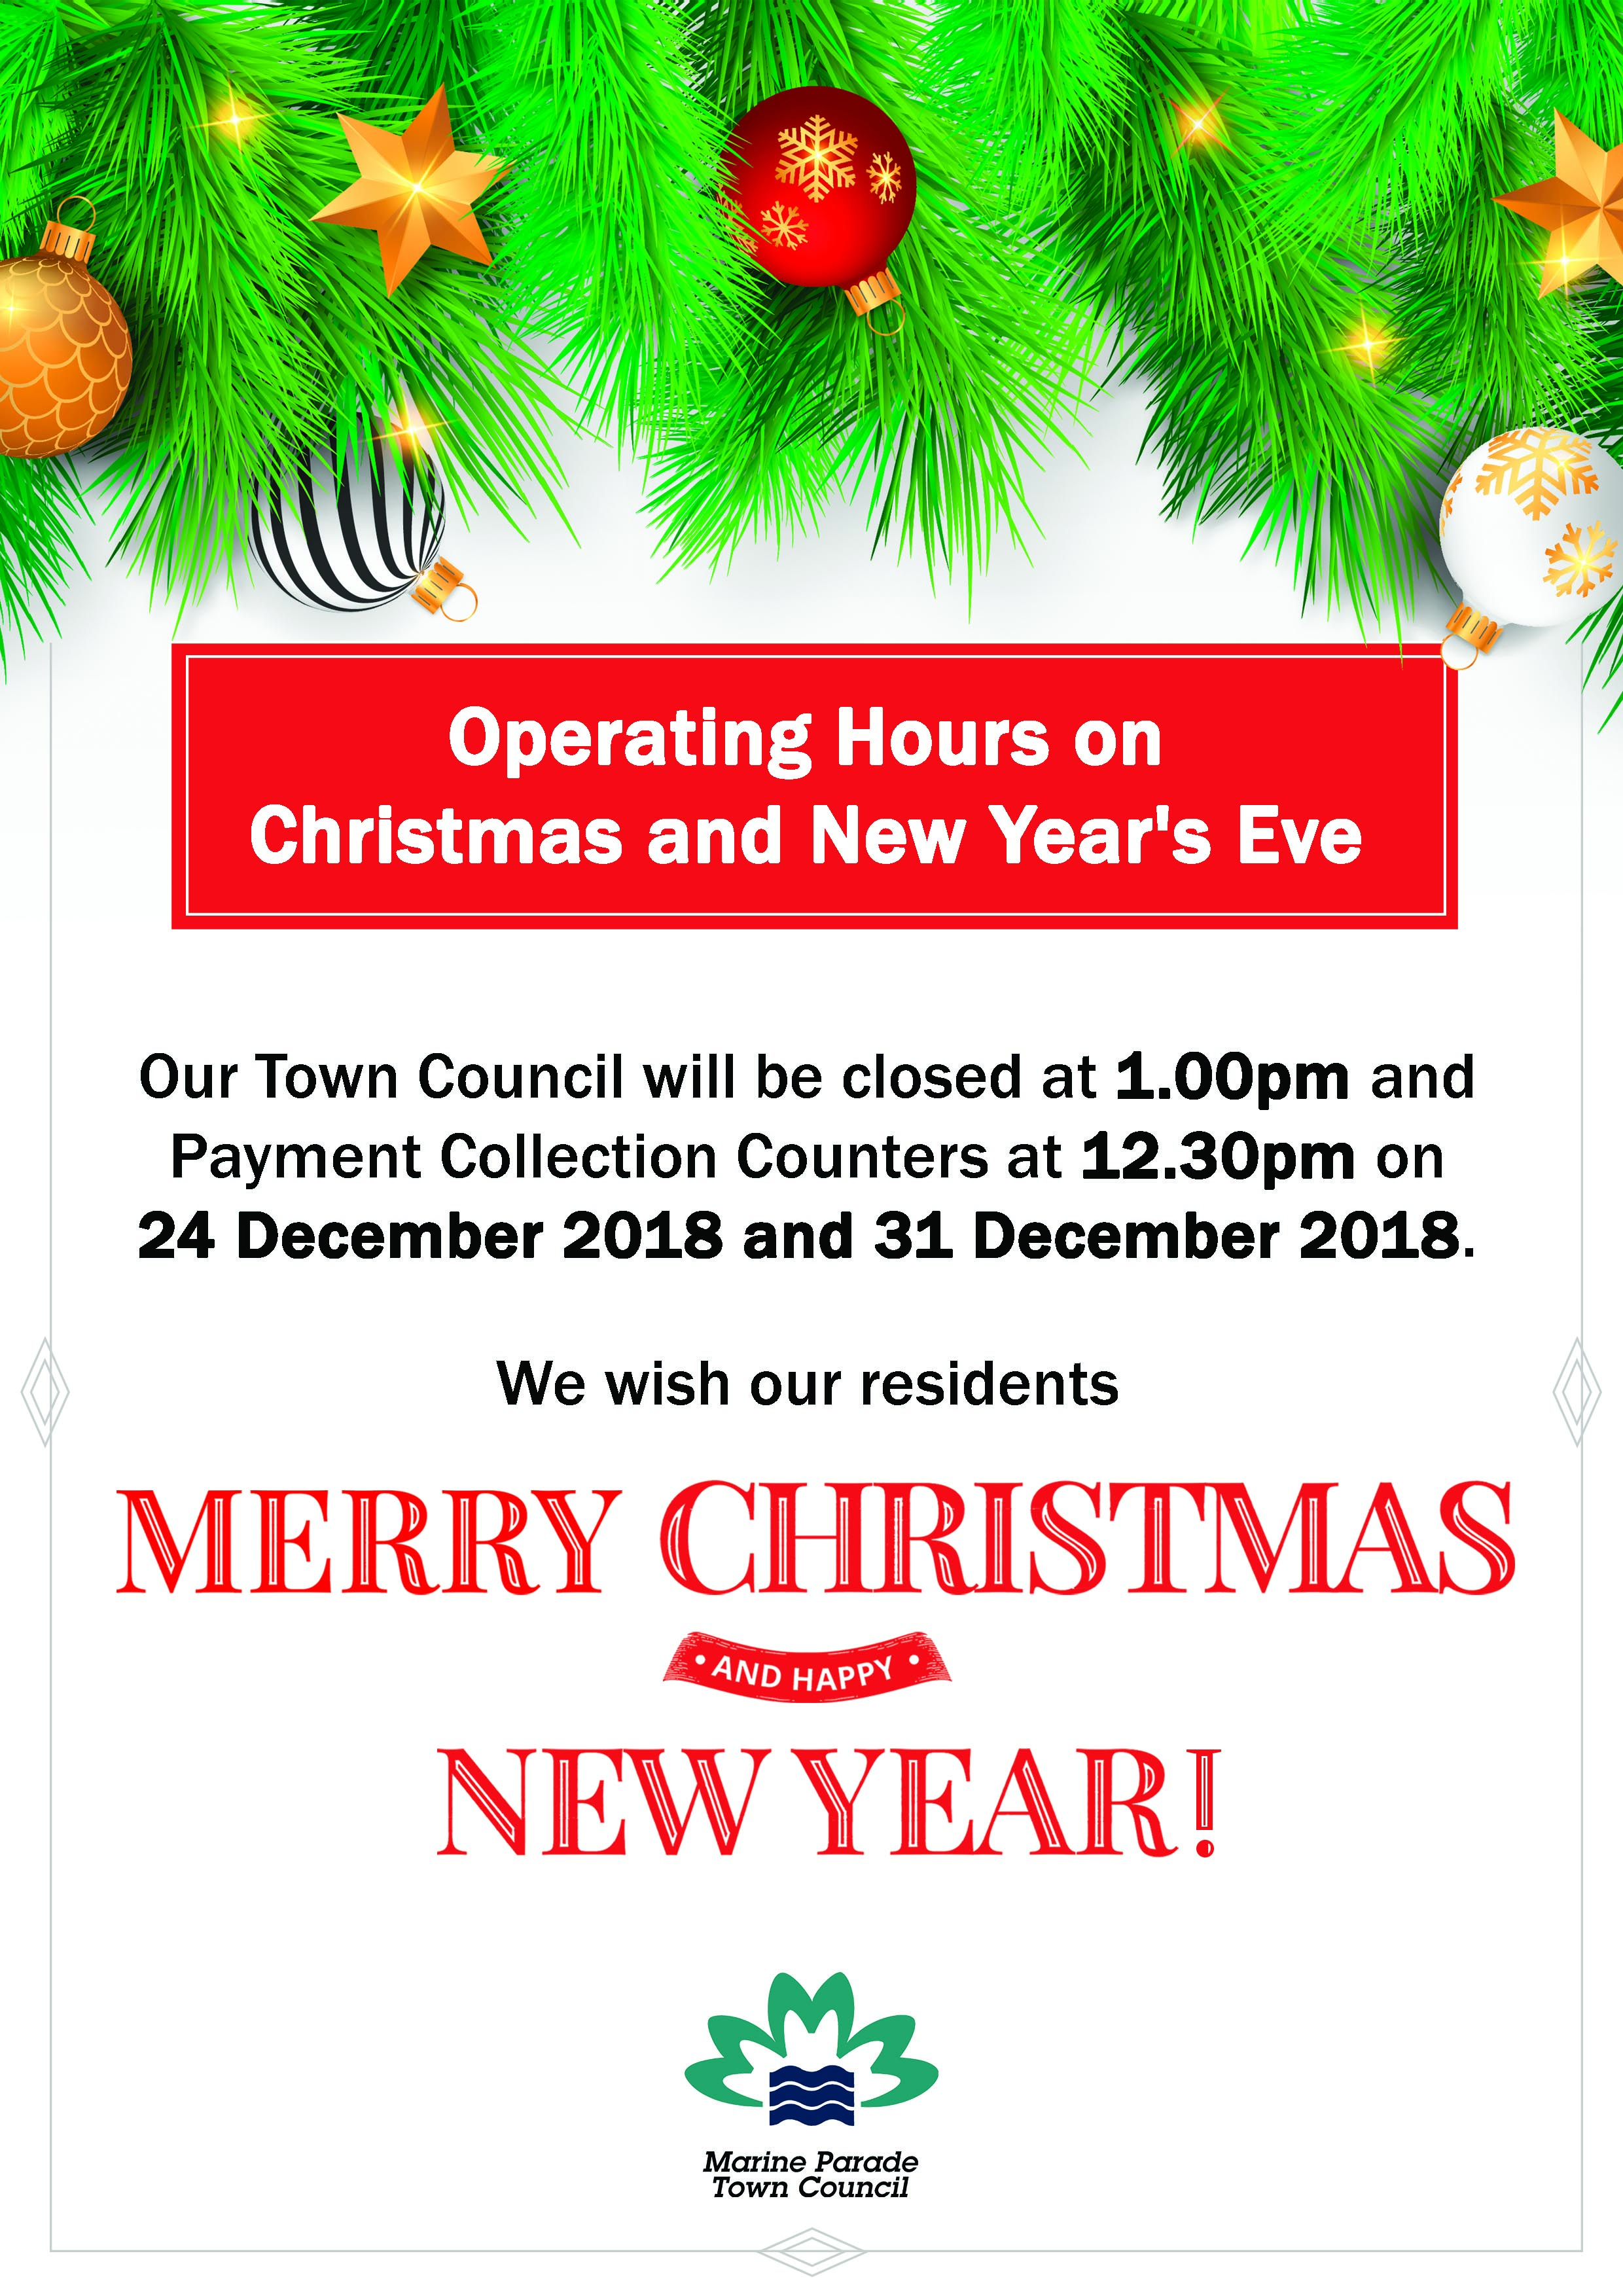 OPERATING HOURS ON CHRISTMAS AND NEW YEAR